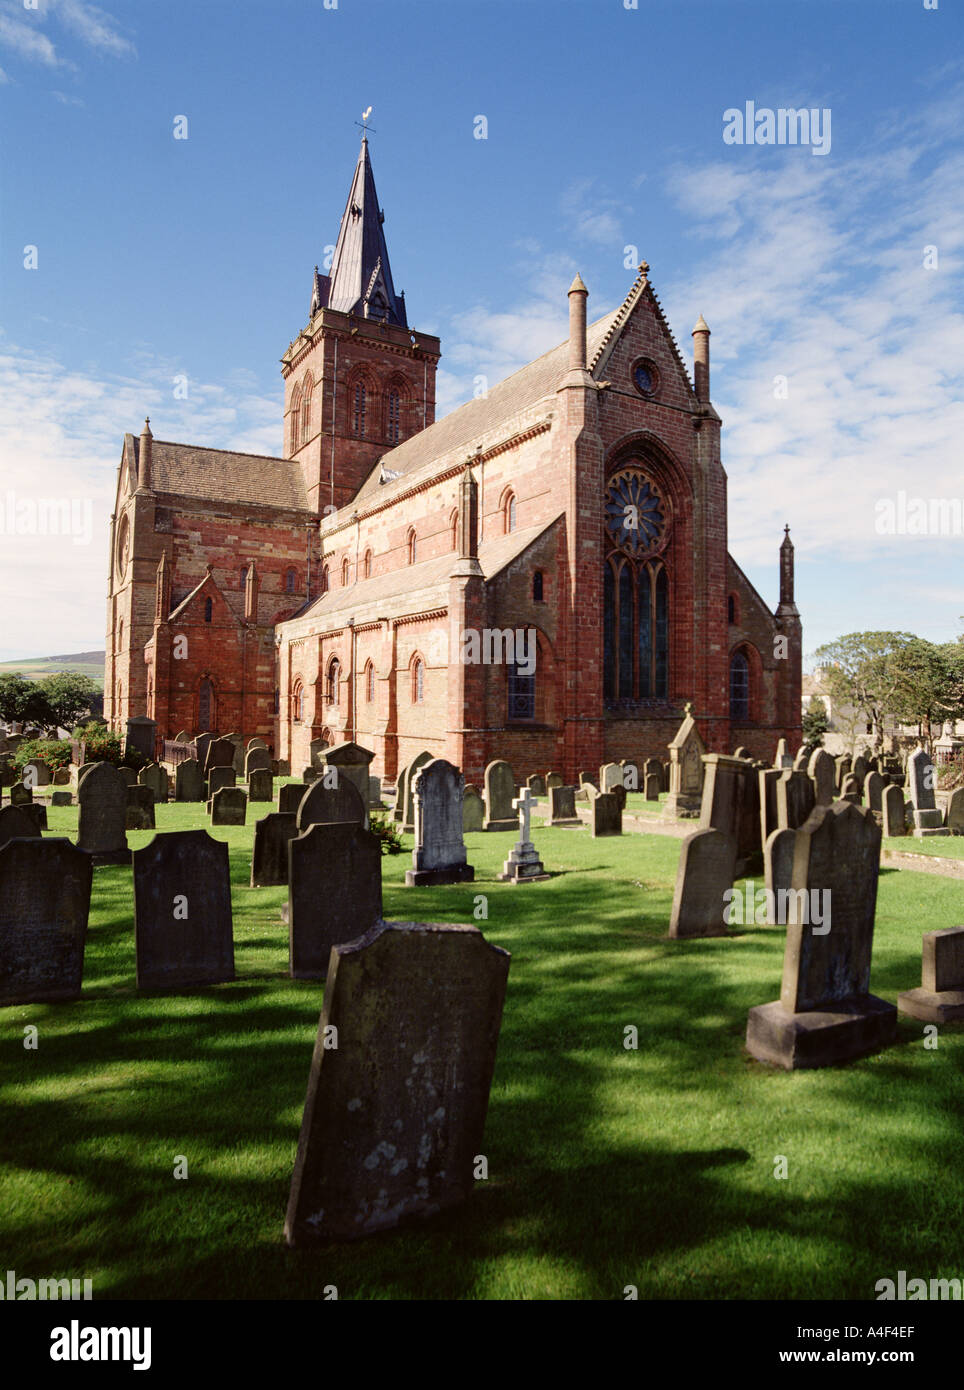 dh St Magnus Cathedral KIRKWALL ORKNEY Cathedral building and graveyard orkneys - Stock Image